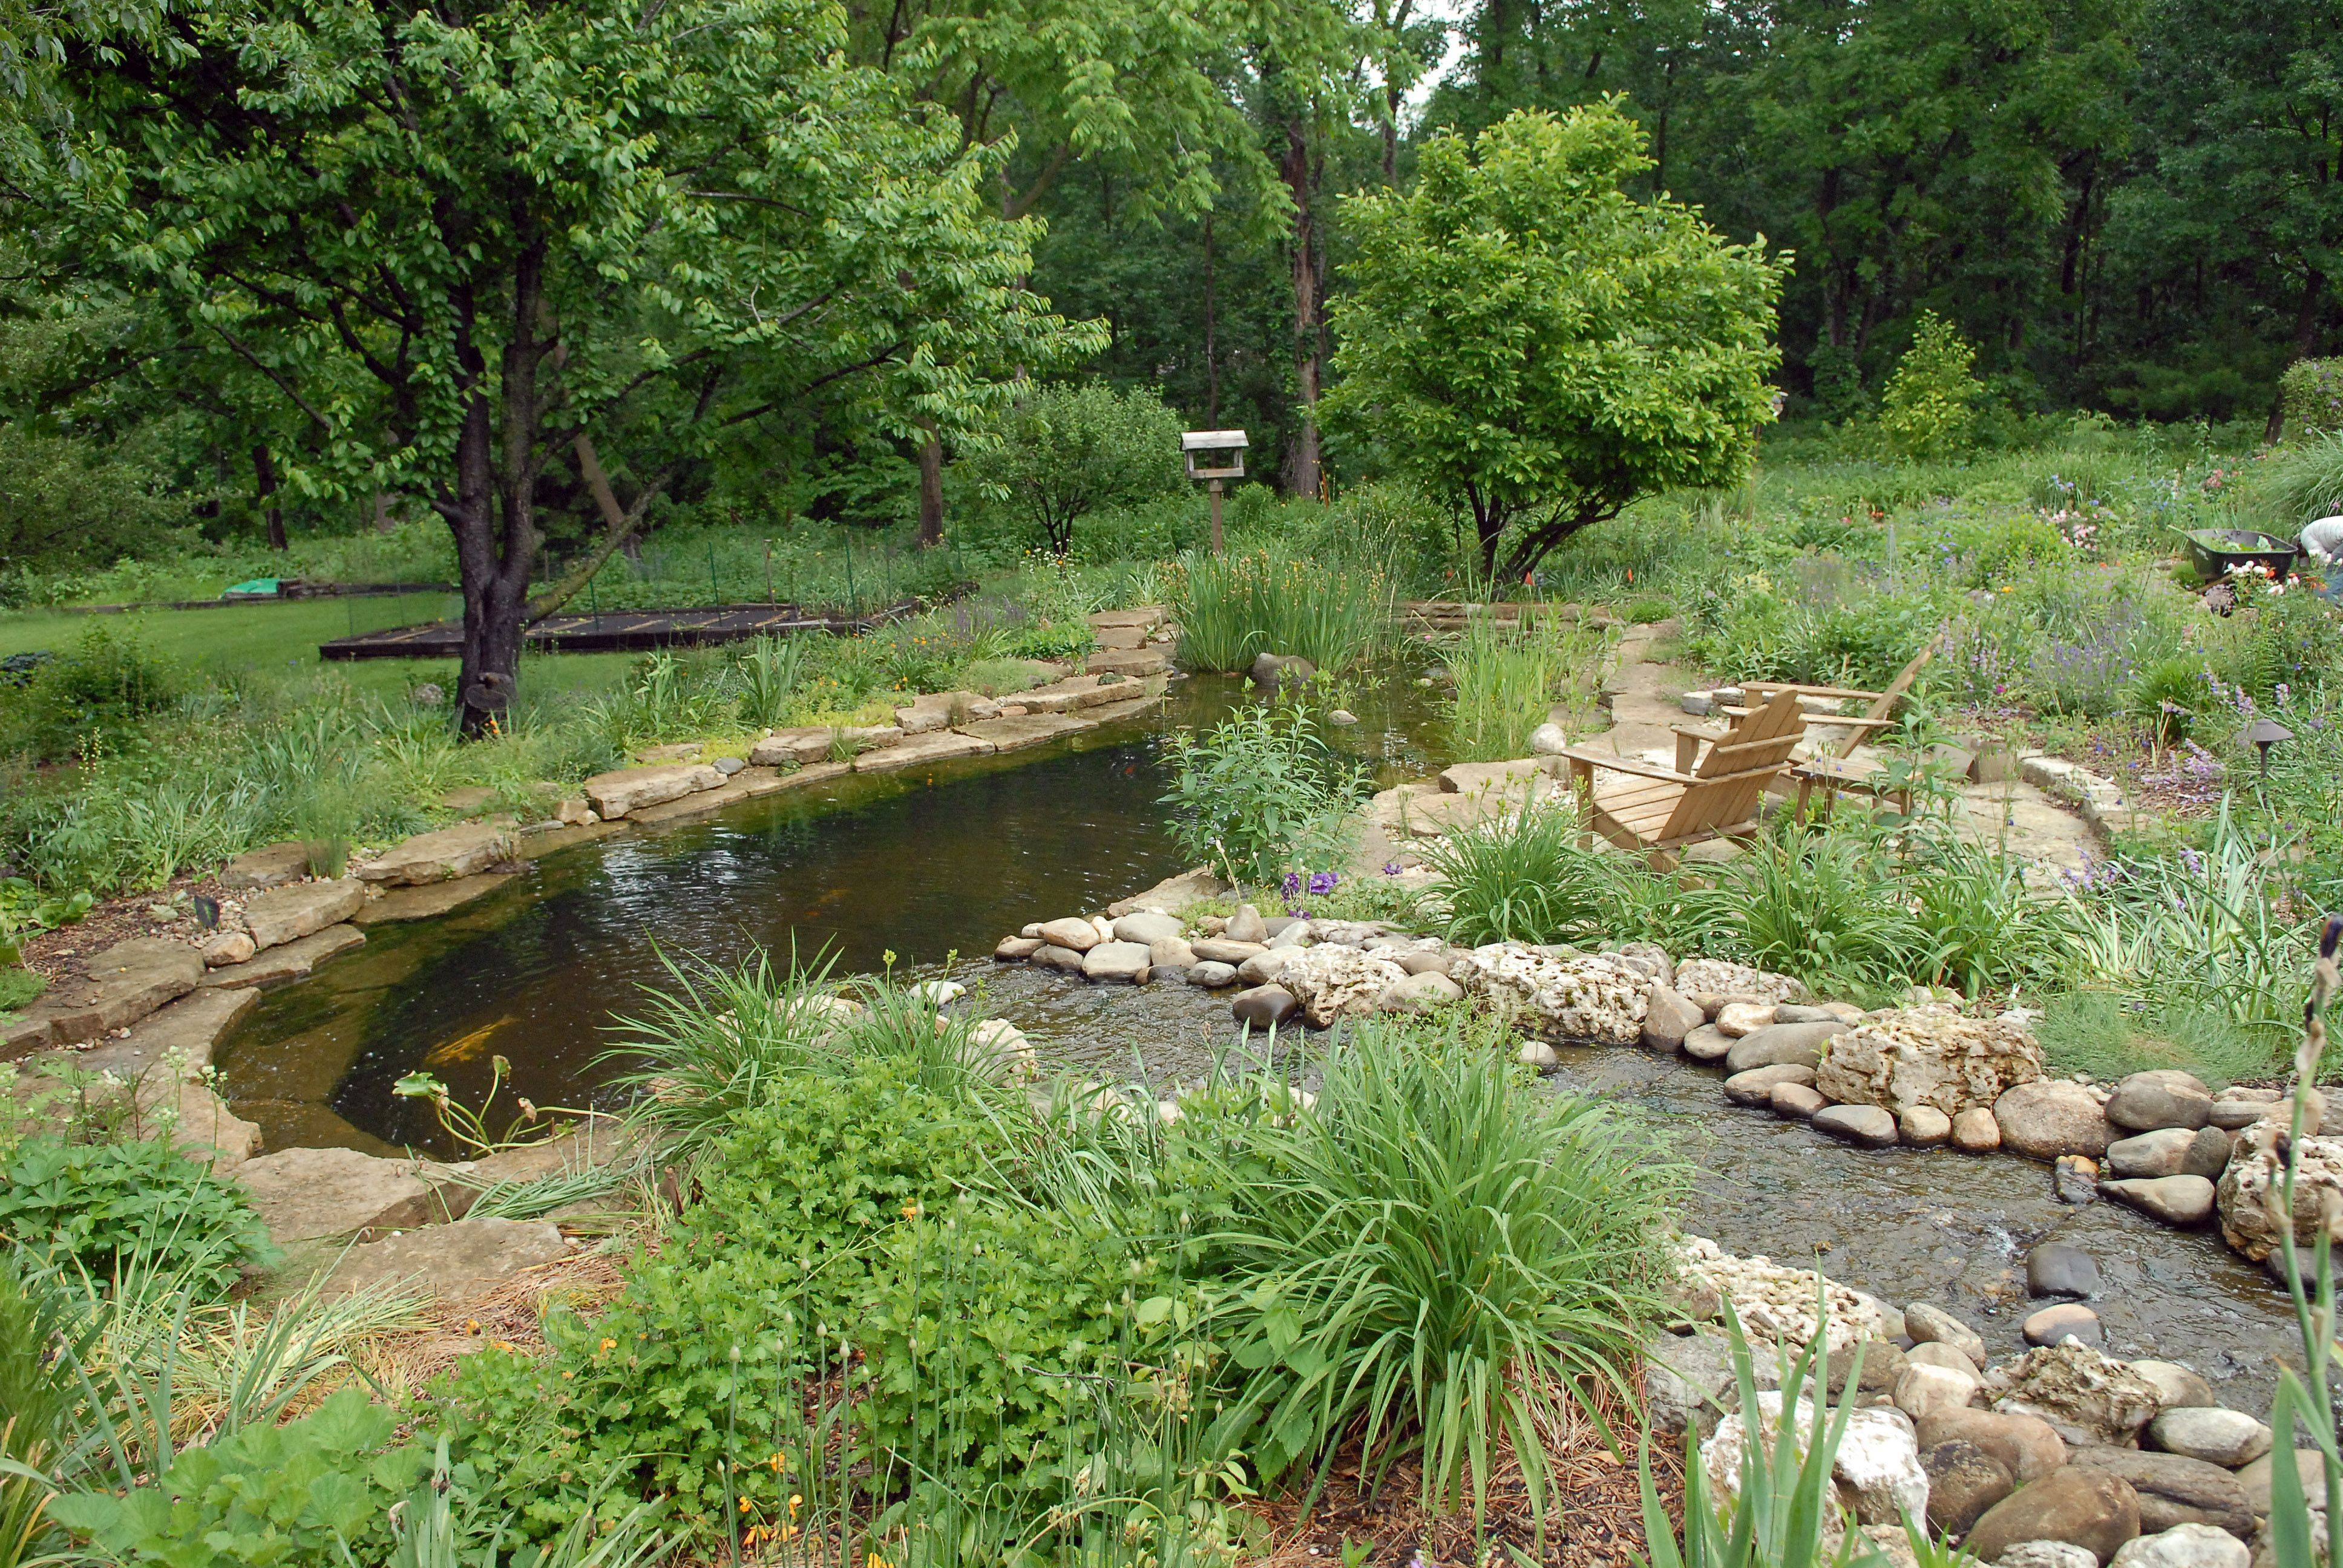 One of the ponds in Dee and Bob Raimondi's gardens is designed for swimming.